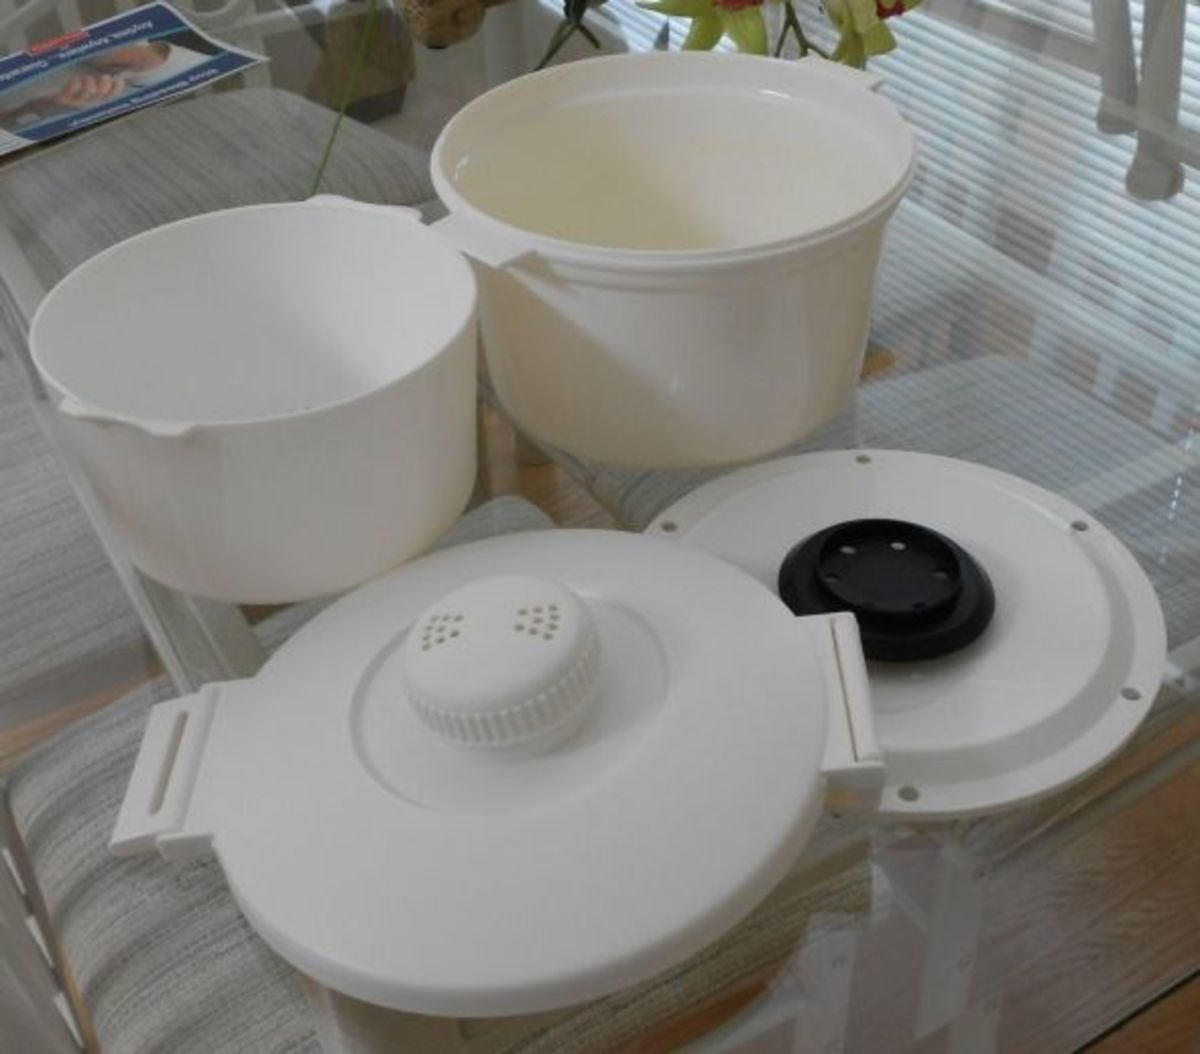 These are the four section of the Nordic Ware Steamer and Cooker